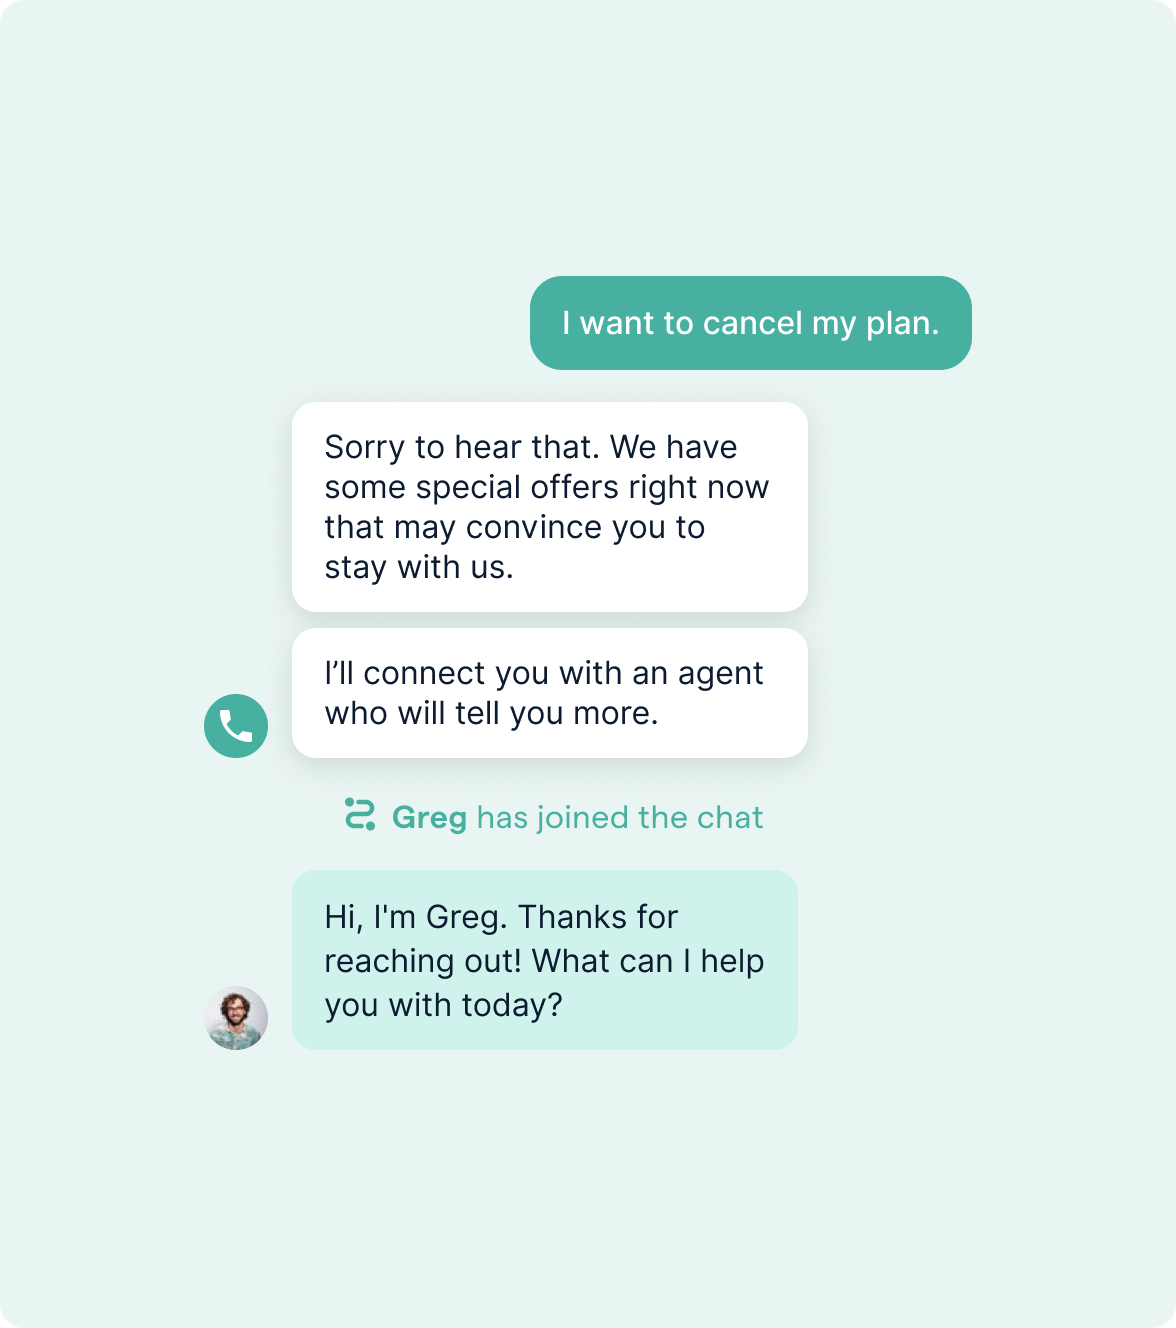 Chatbot Helping A Customer Cancel Their Phone Plan